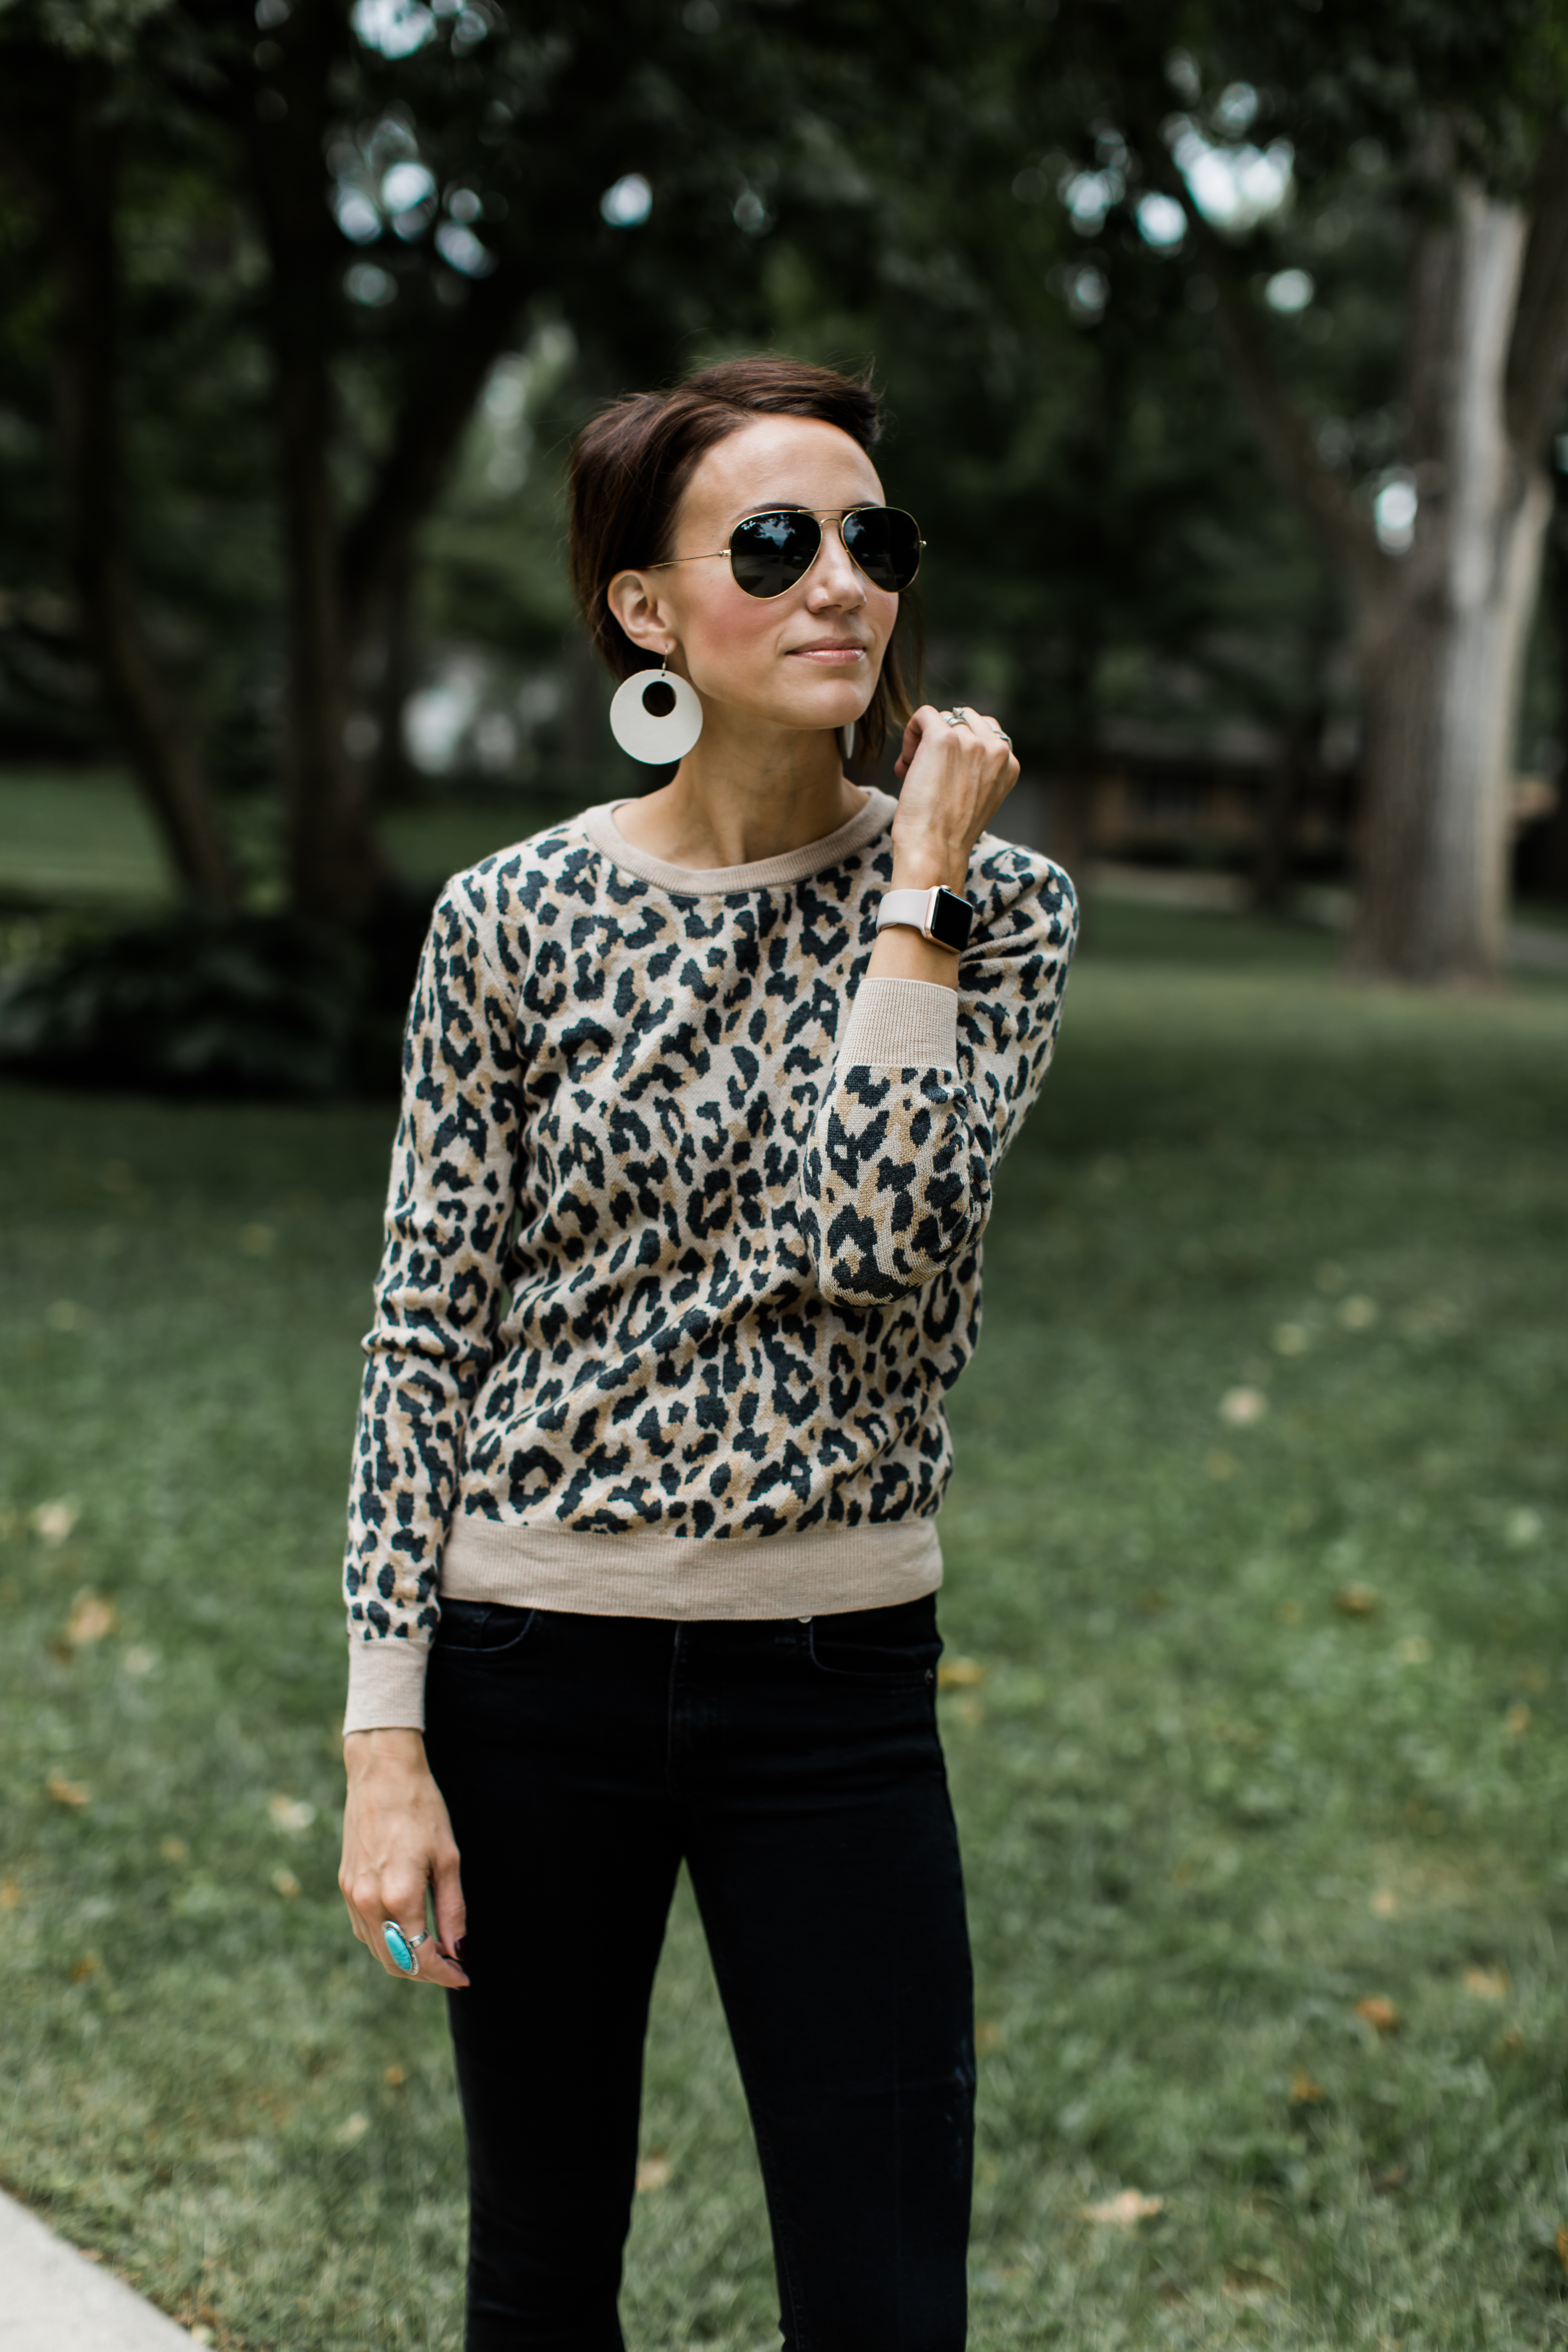 9b97a4d58e Sweater – Leopard print sweaters are filling up the stores right now and  for good reason! They act as a great top on their own